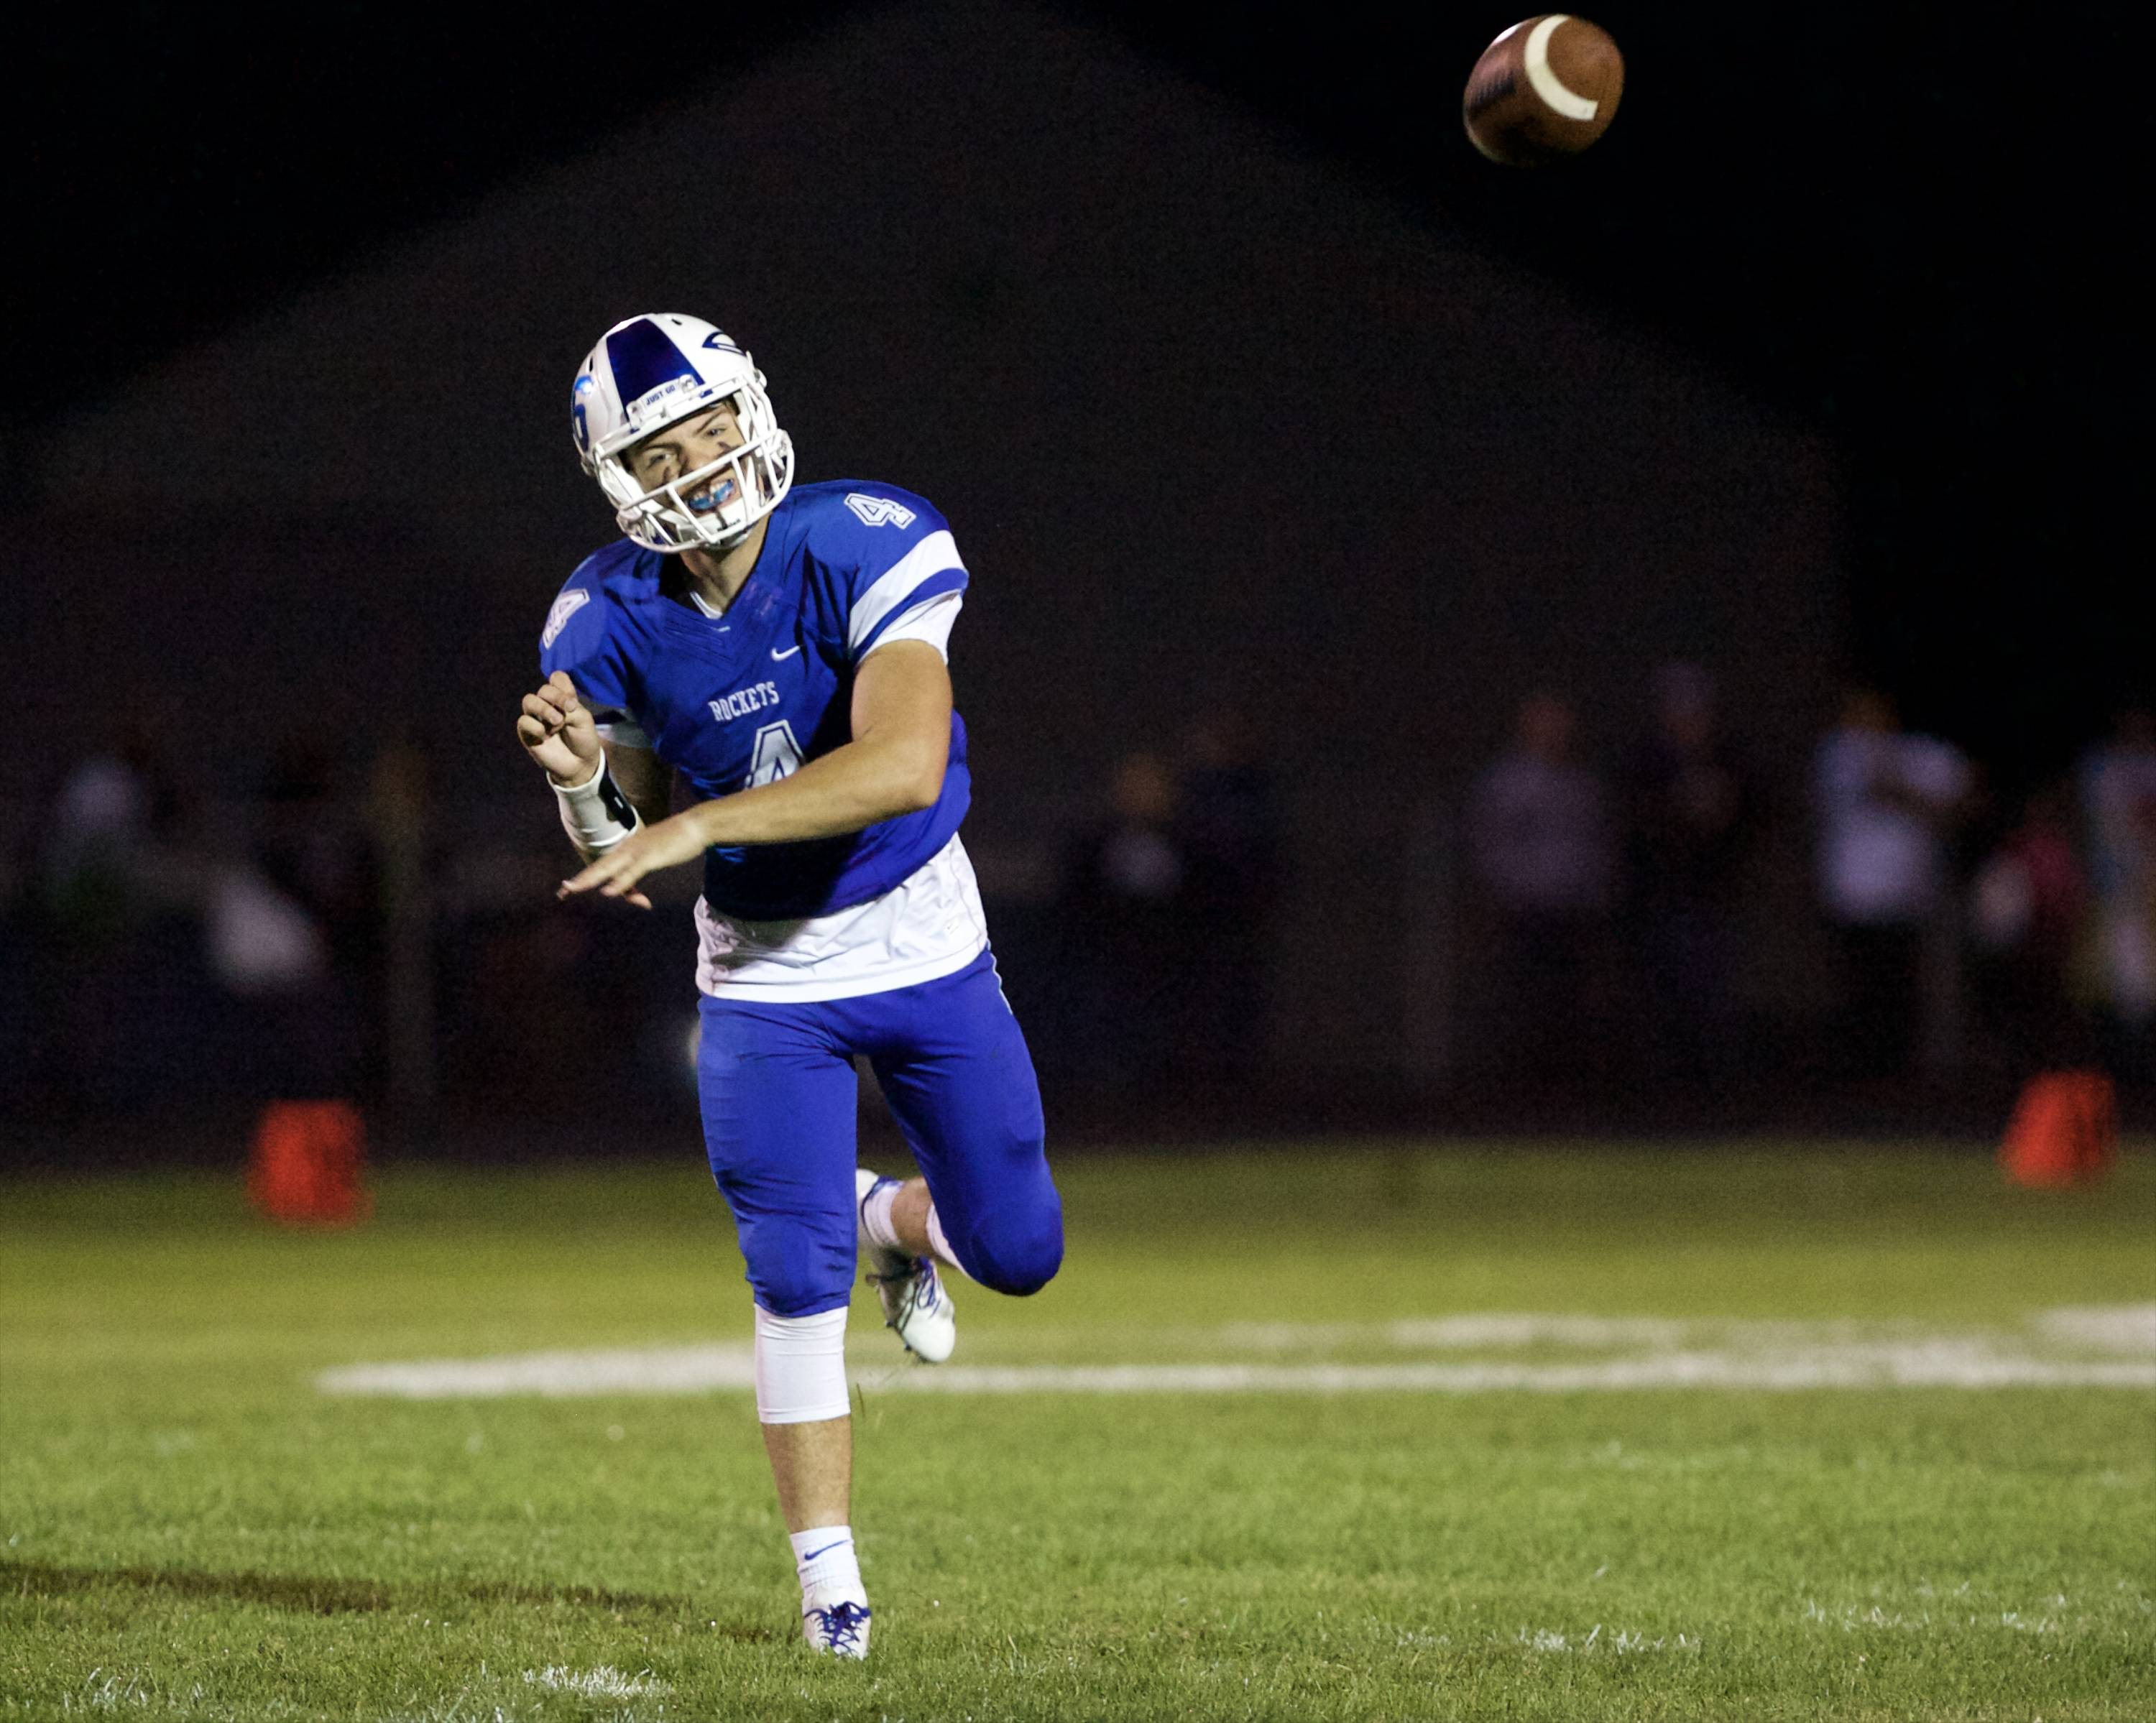 Burlington Central's Johnny DiCostanzo throws for yardage against Hampshire on Friday in Burlington.